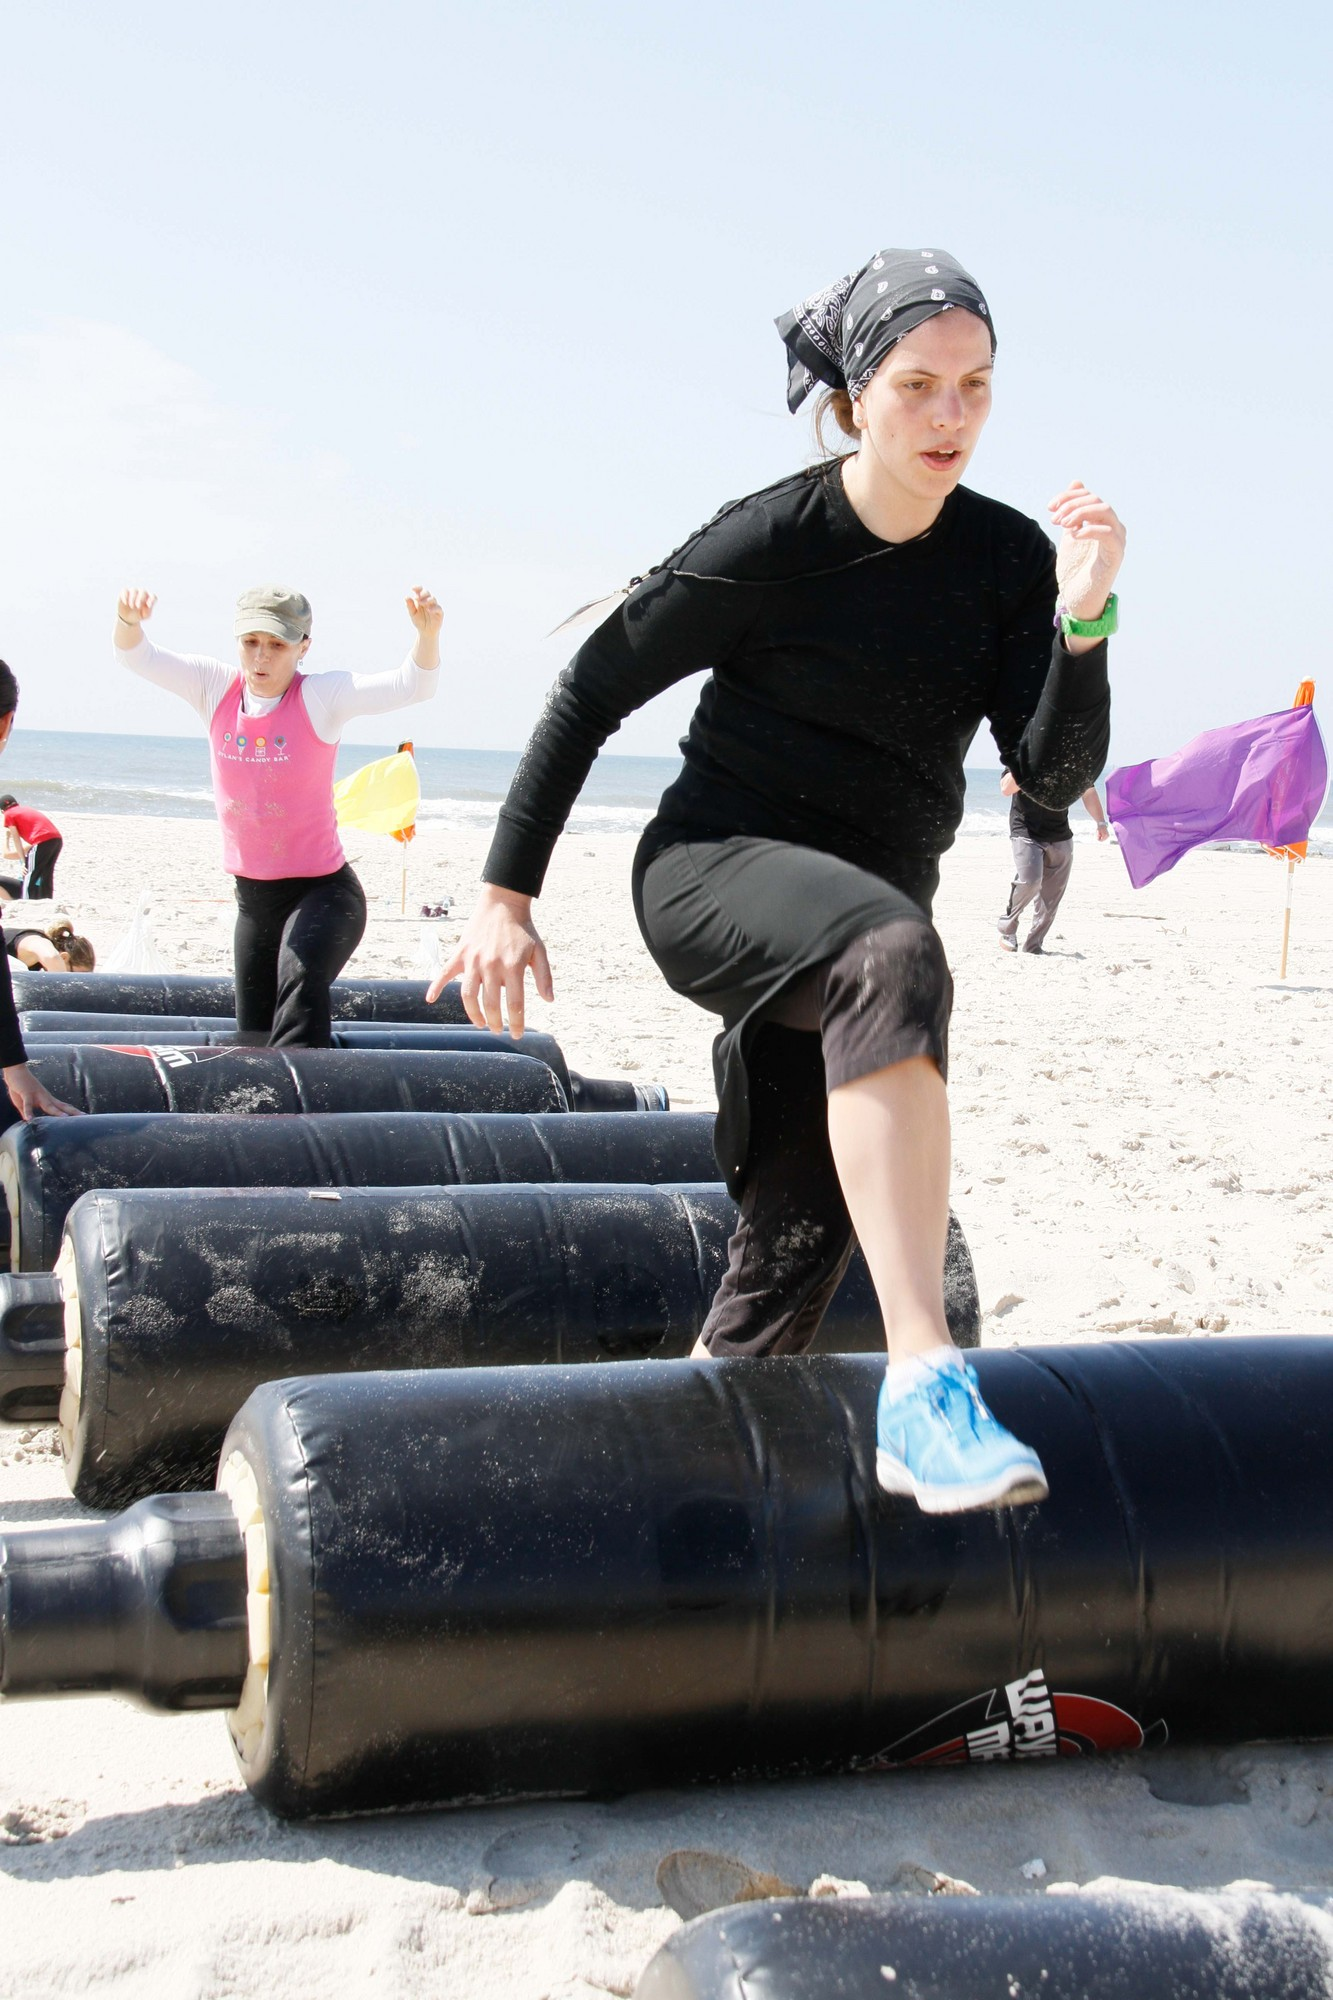 Boot camp exercises such as the obstacle course tested the women's agility as well as endurance.